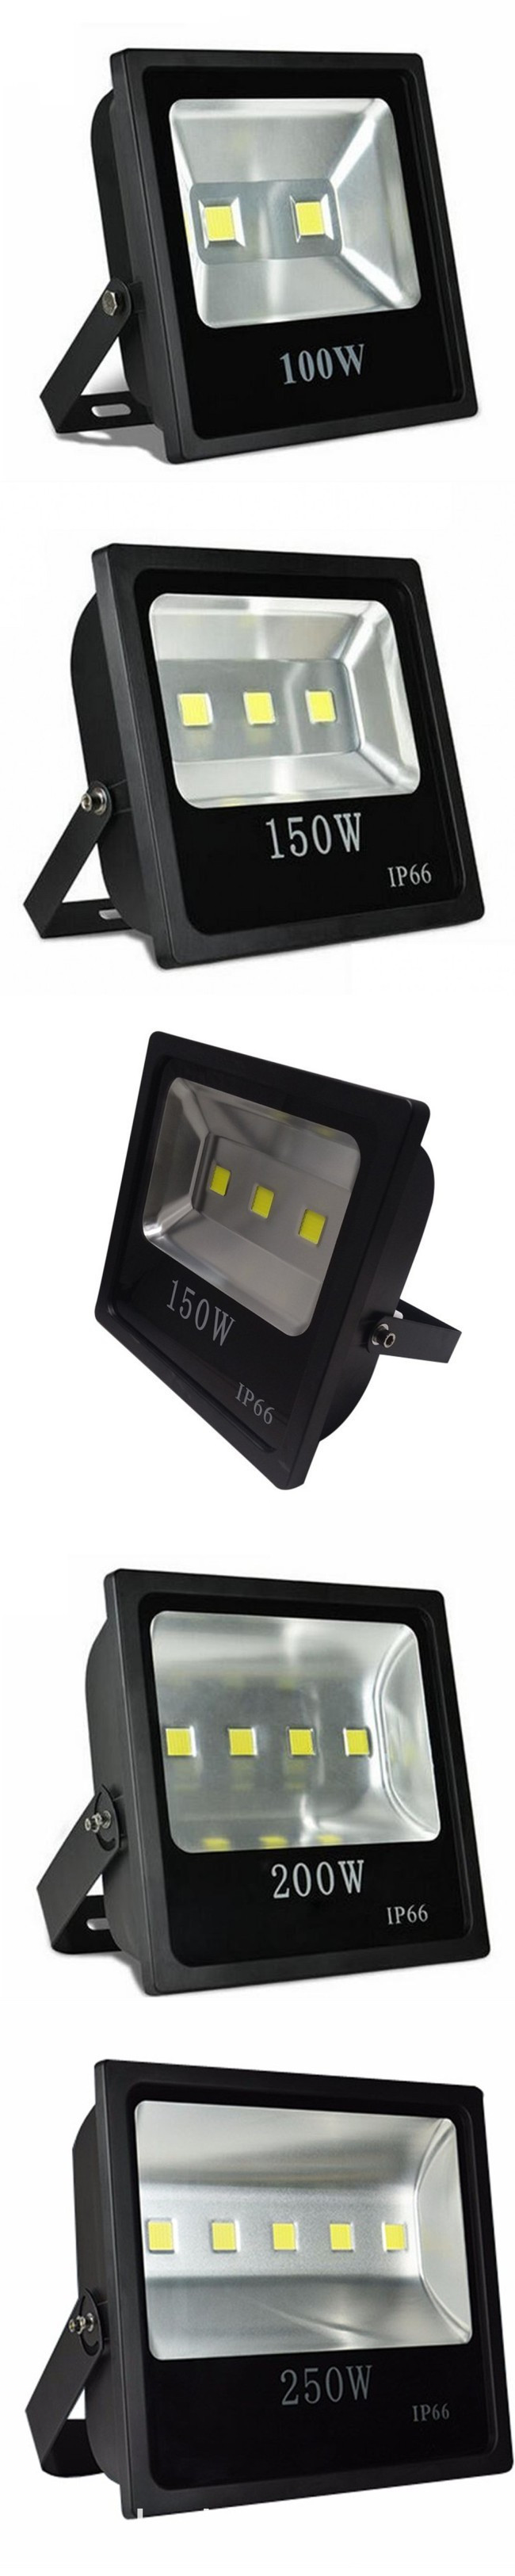 150W 220V 110V Driverless LED Flood Light LED Tunnel Light (100W-.83/120W-.23/150W-.01/160W-.54/200W-.92/250W-.53) 2-Year Warranty